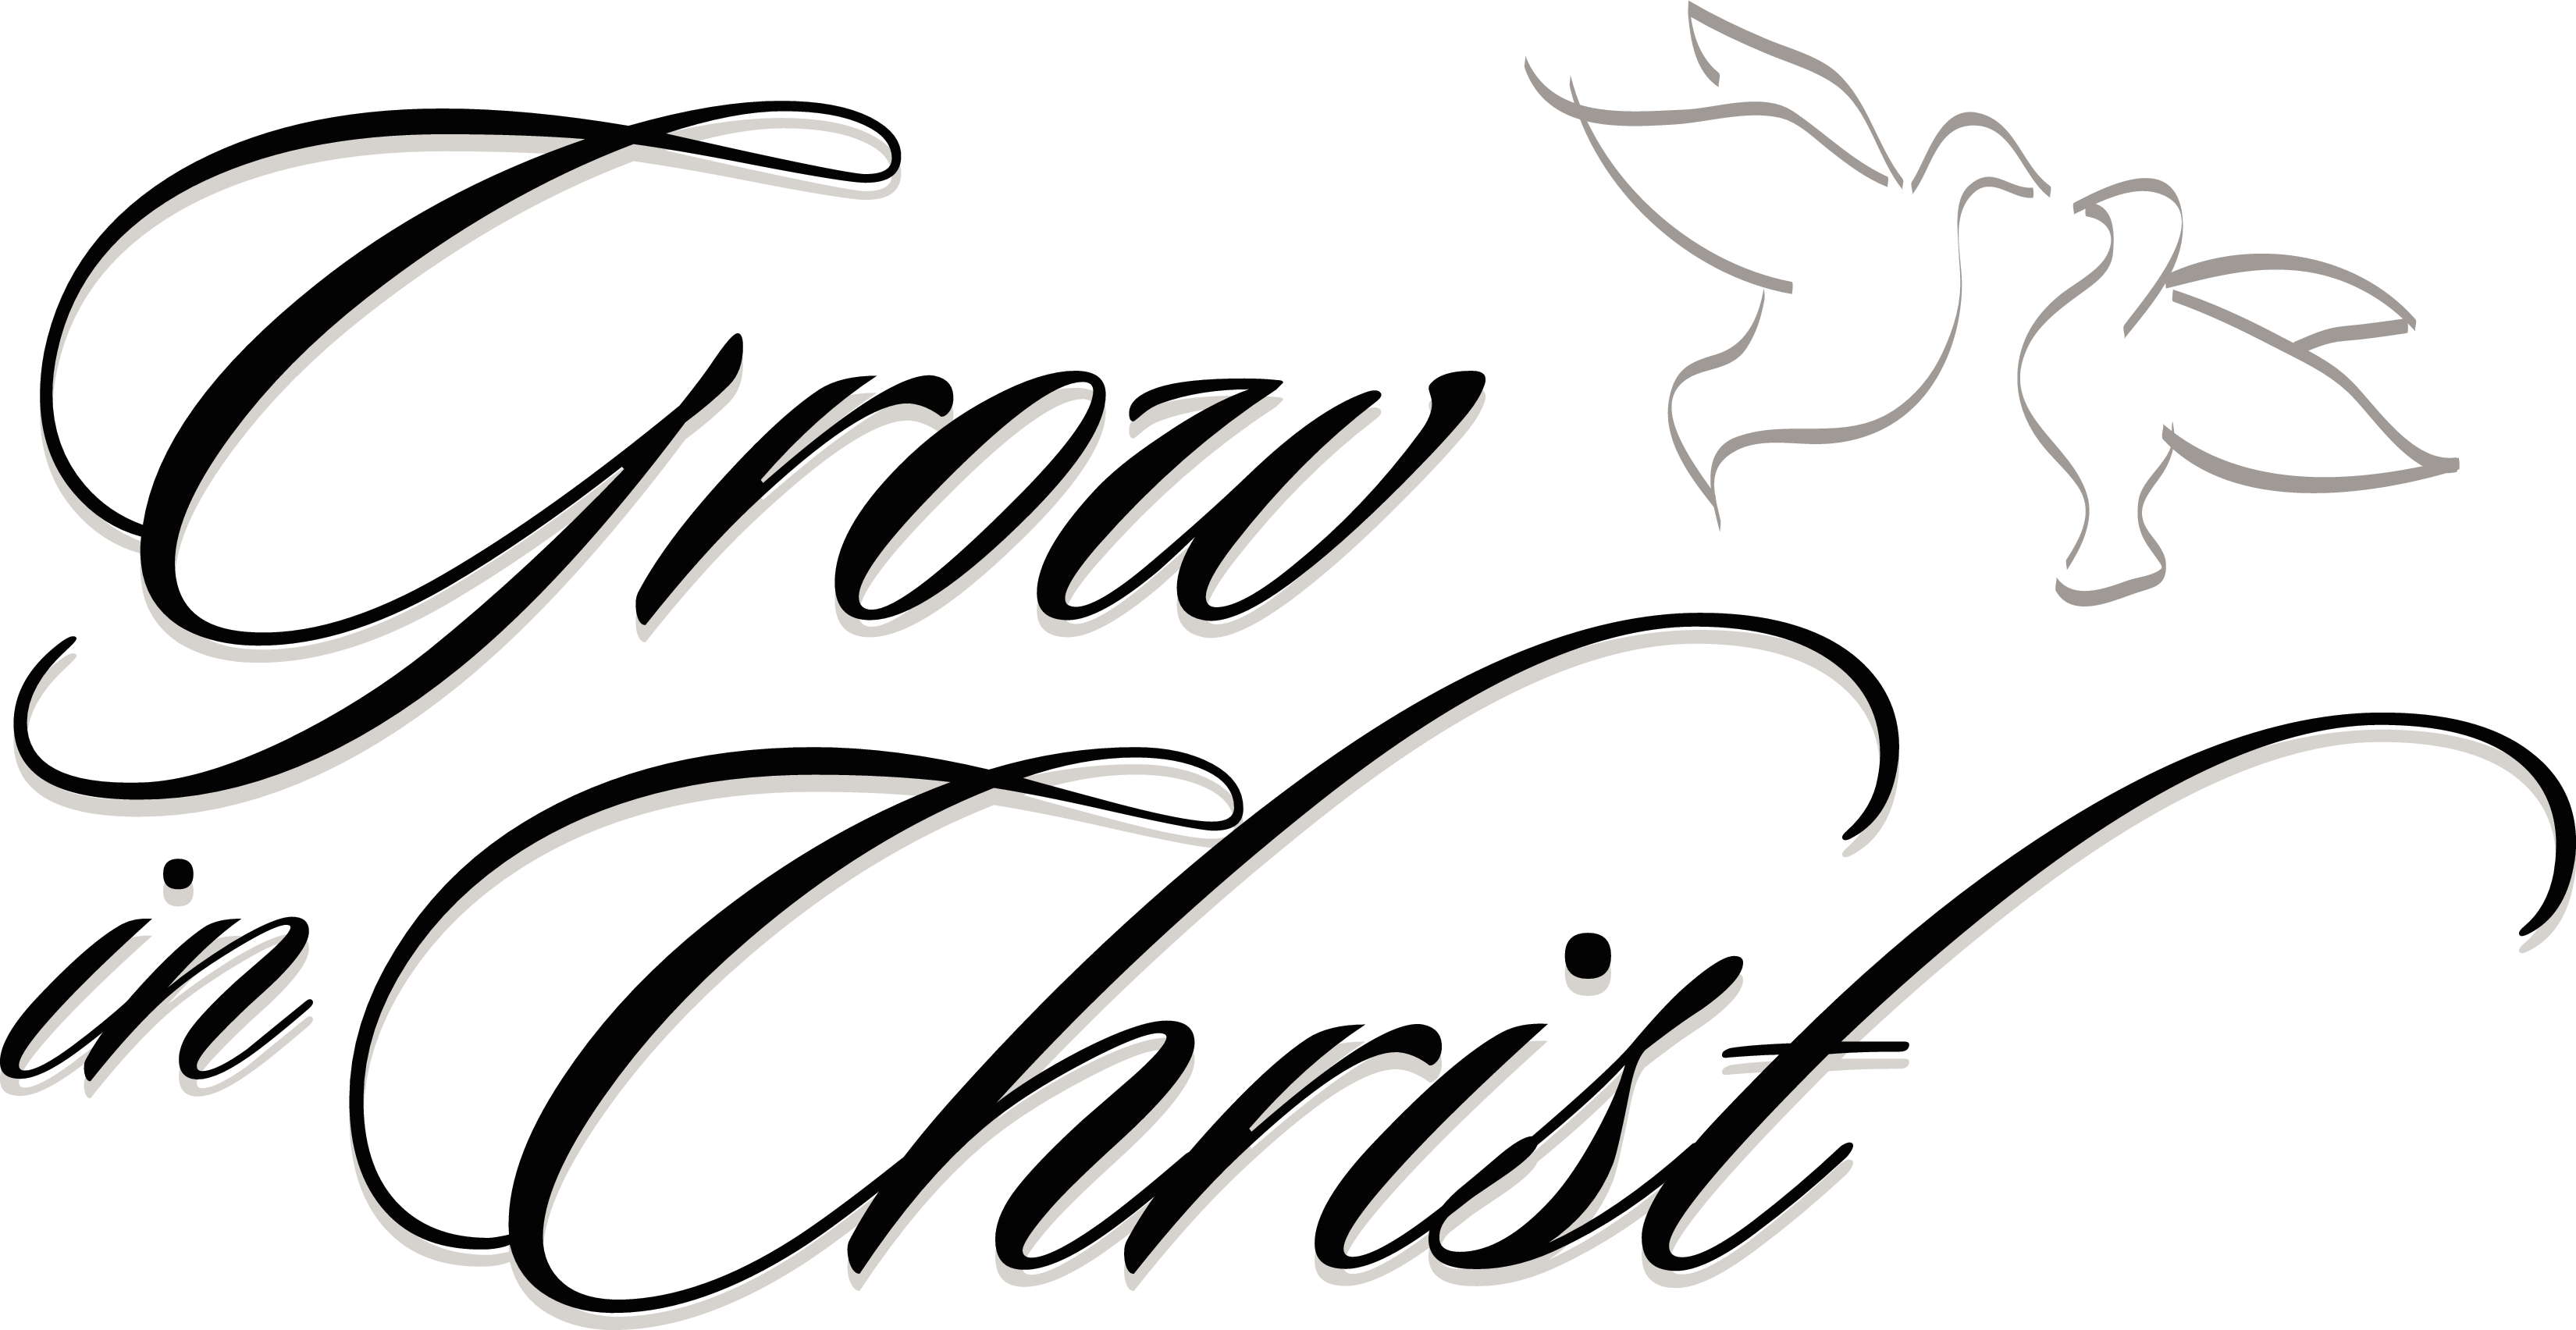 Welcome cross clipart transparent download Clipart christian - ClipartFest transparent download